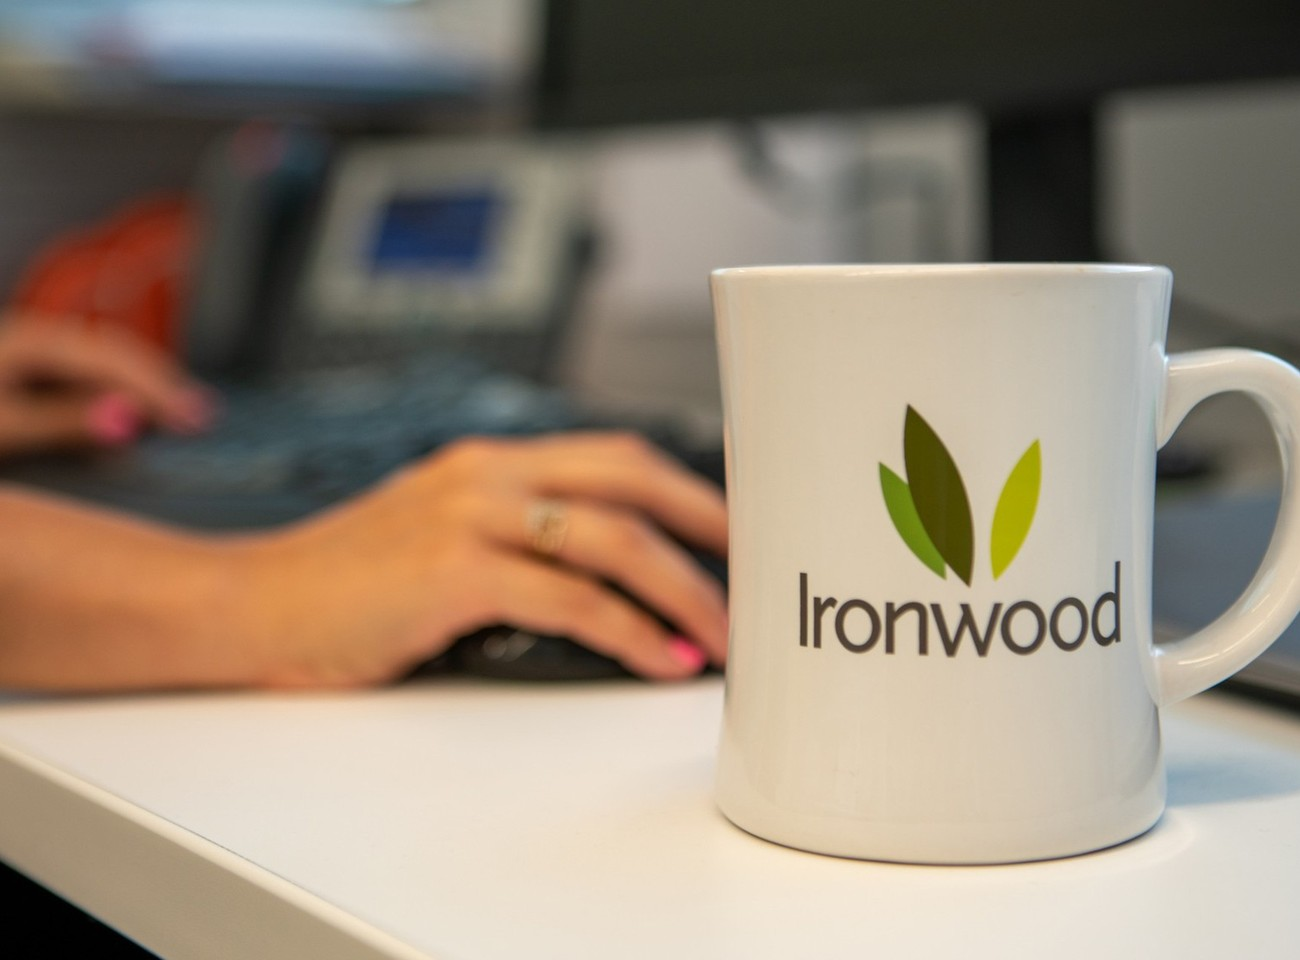 Ironwood Pharmaceuticals Careers